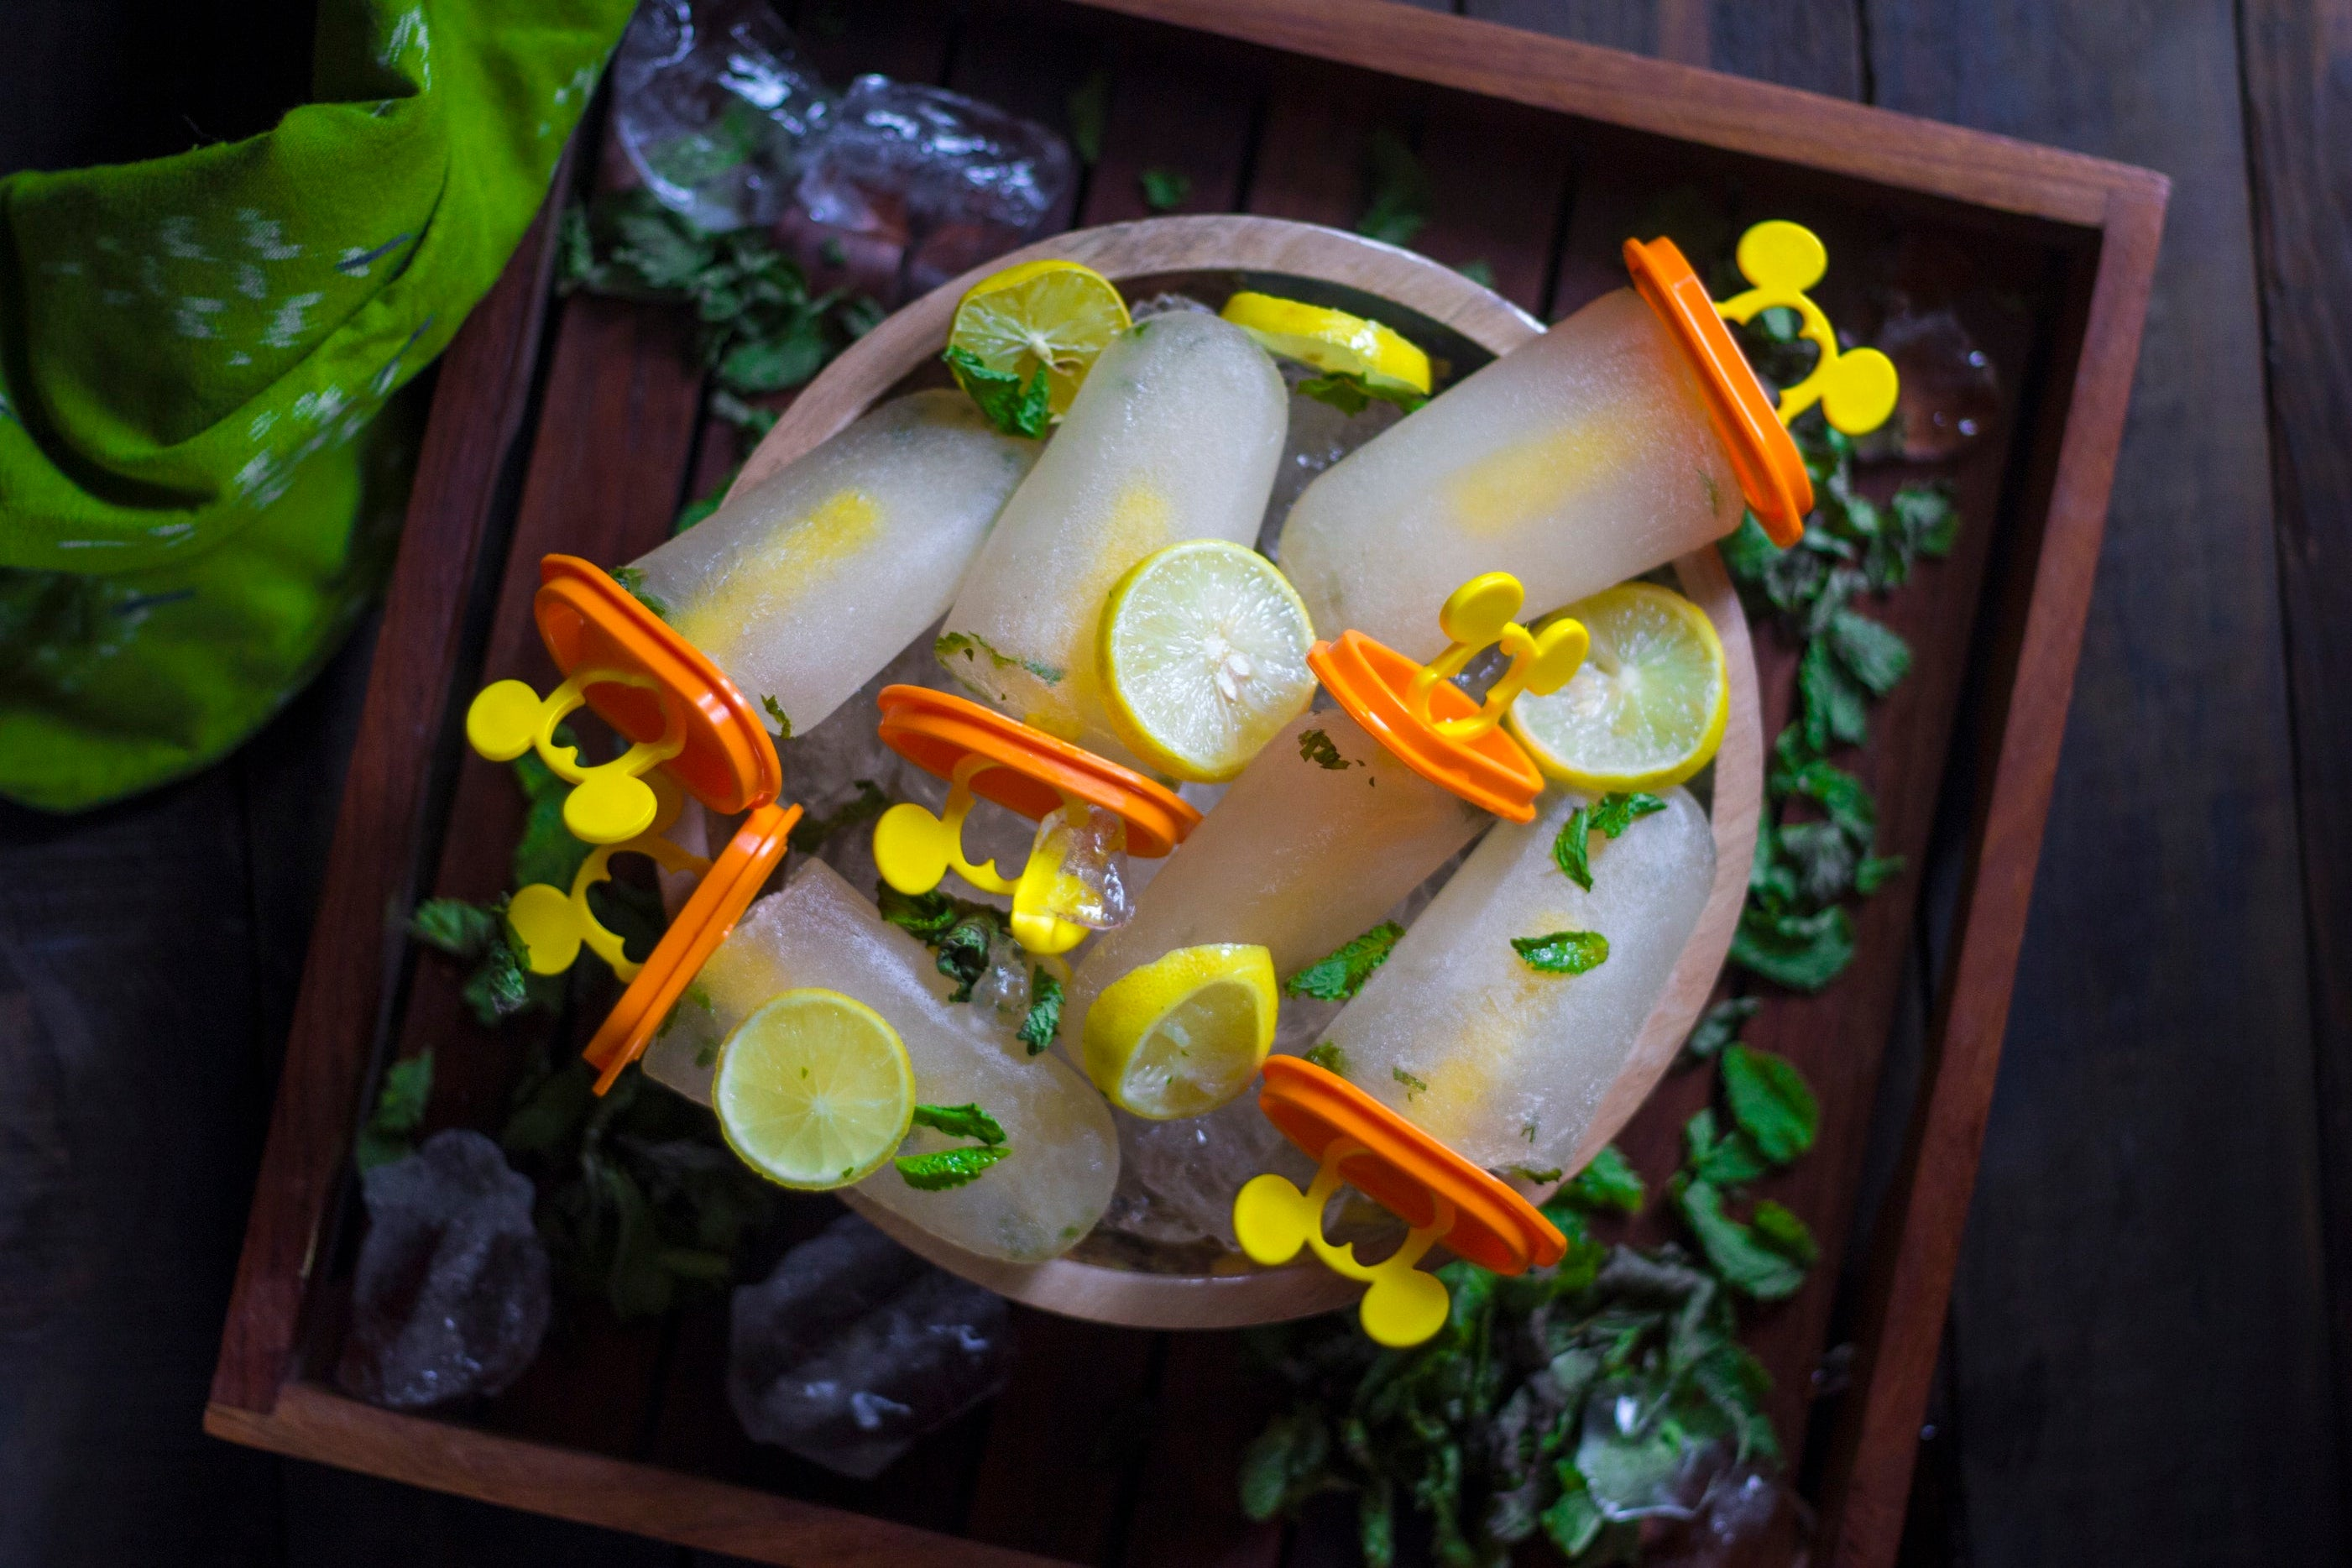 Tequila and cooking: Mexico in your glass and on your plate